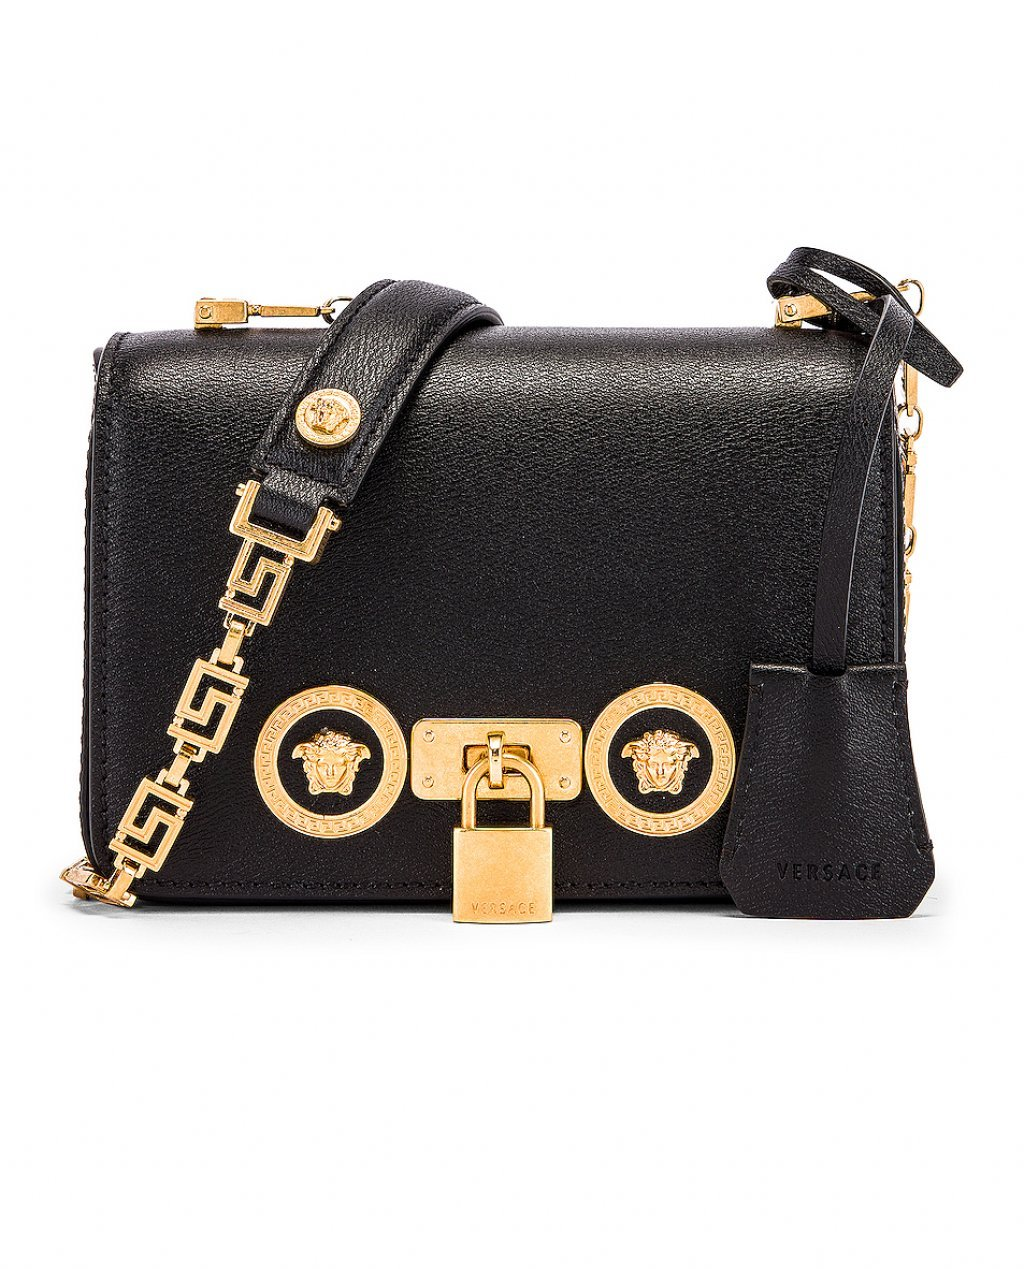 Versace Small Icon Flap Shoulder Bag in Black.